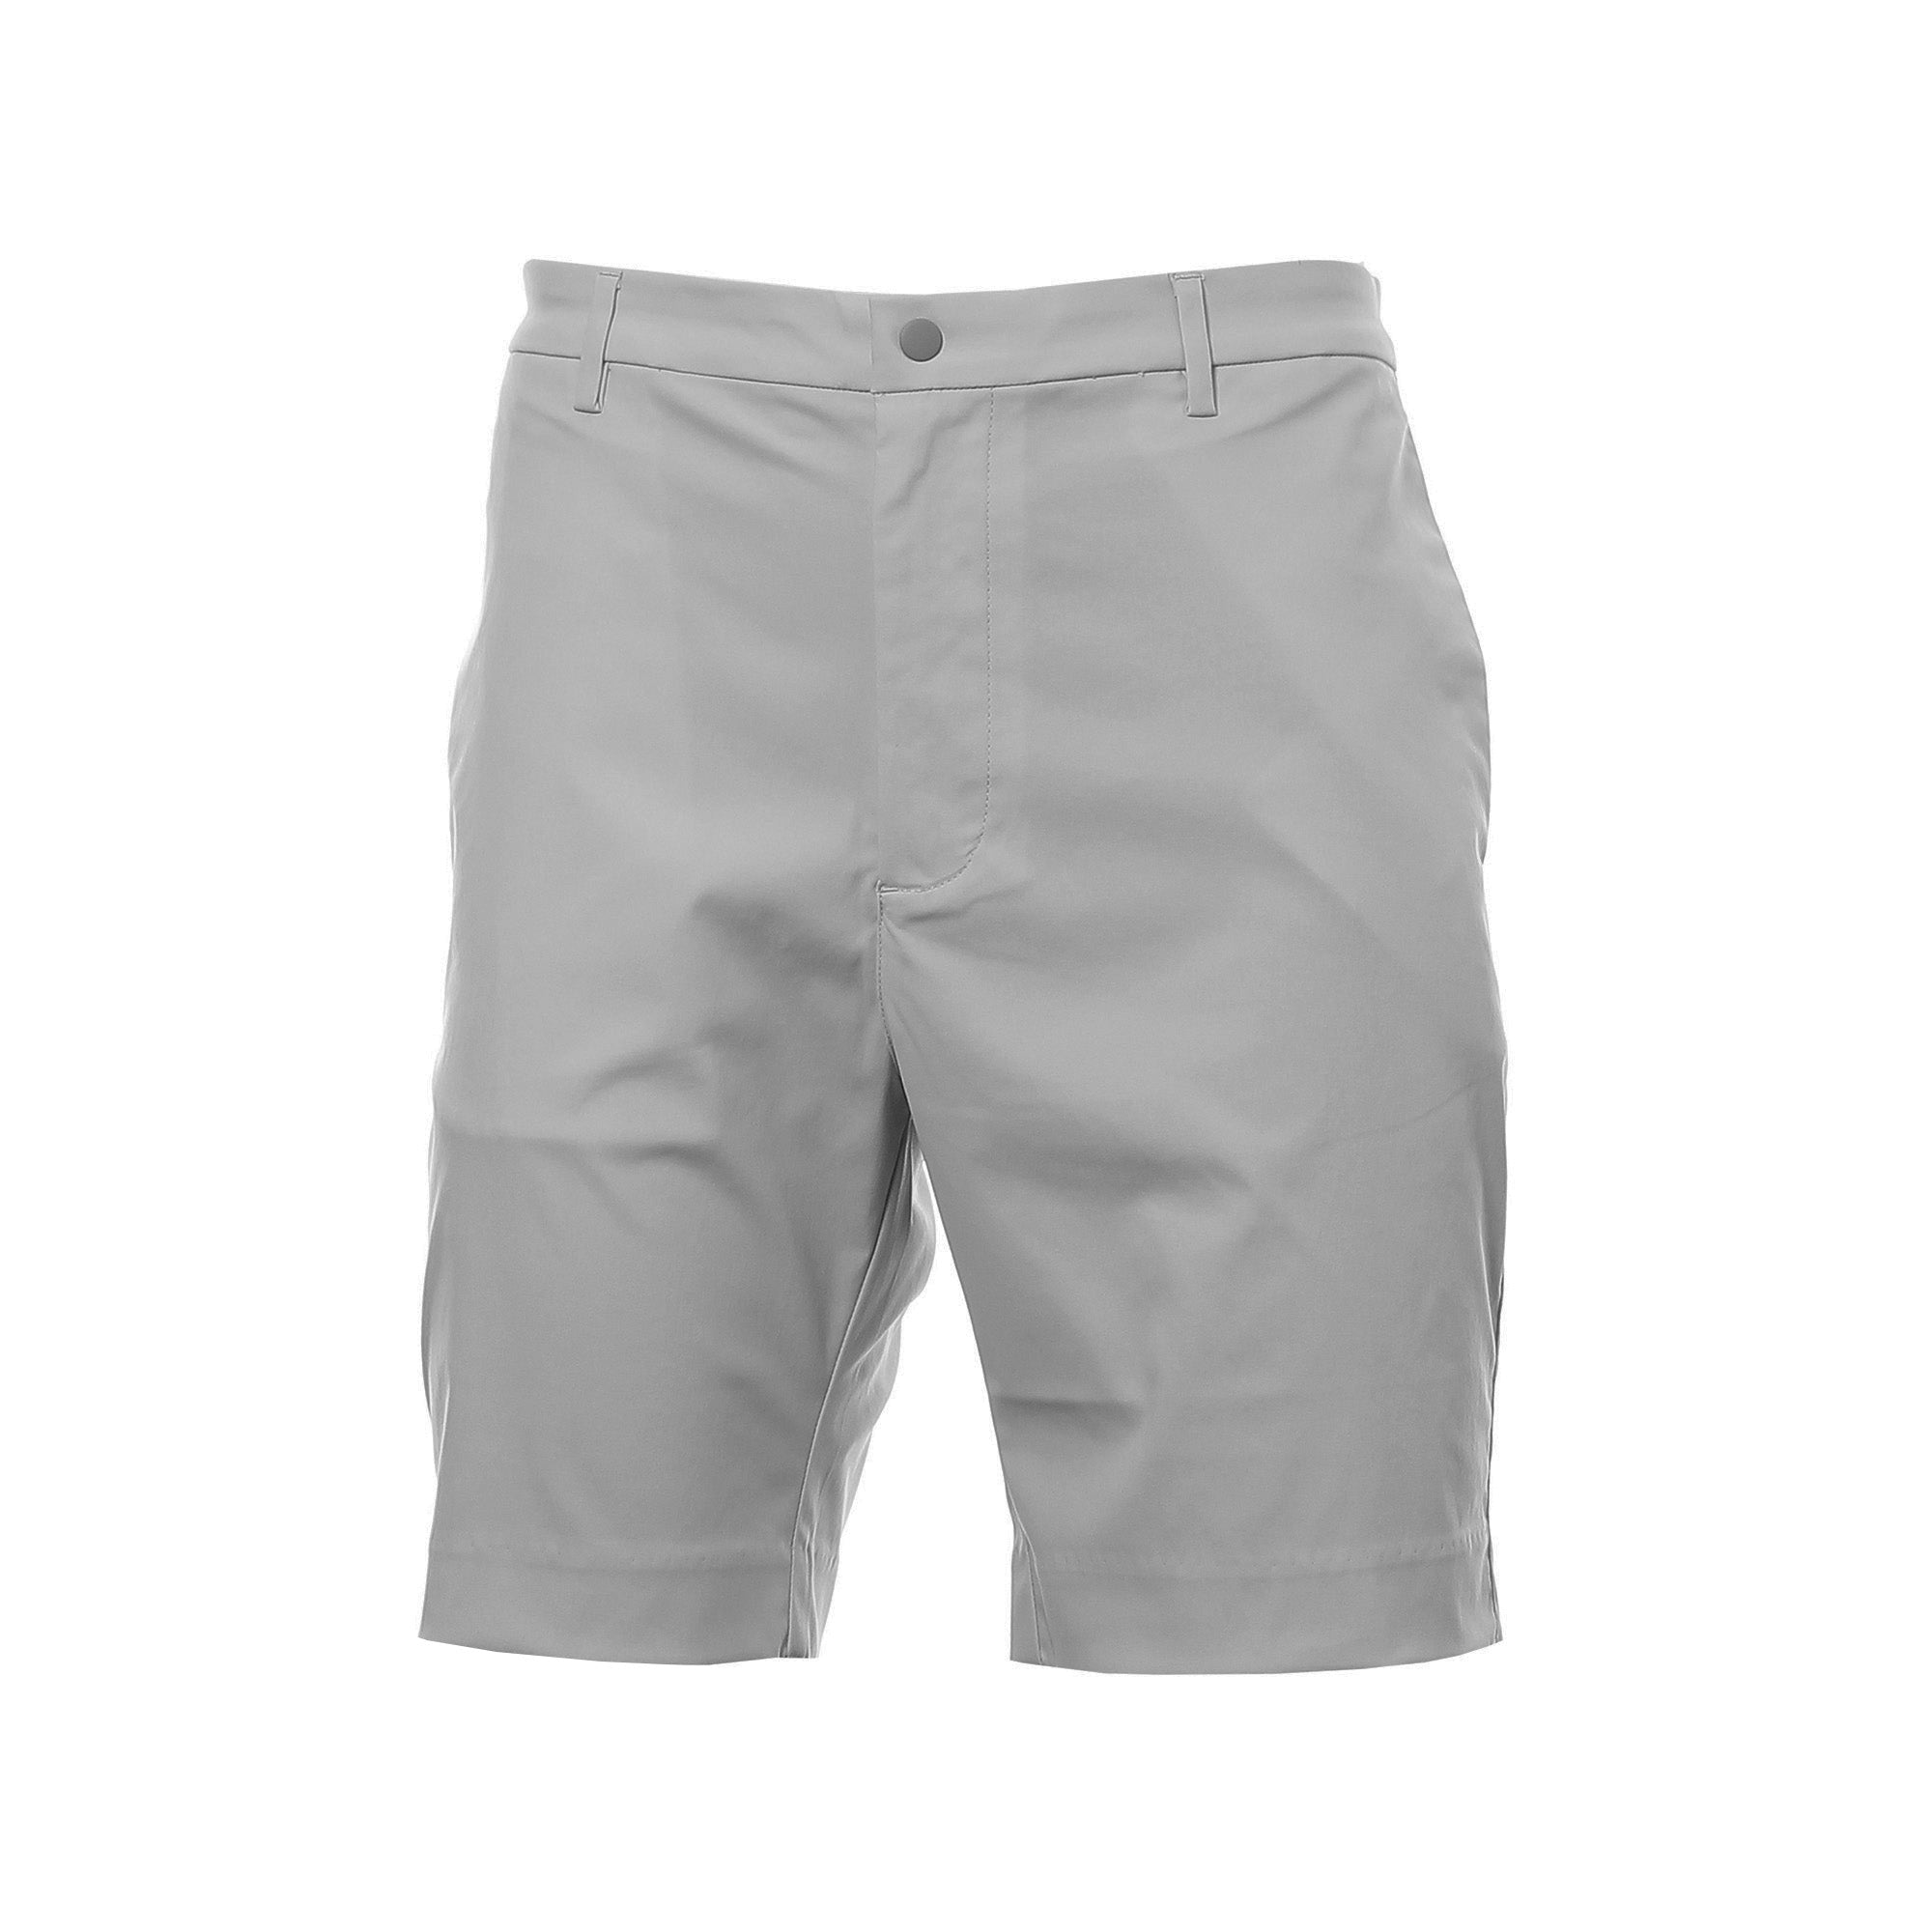 FootJoy FJ Lite Slim Fit Shorts